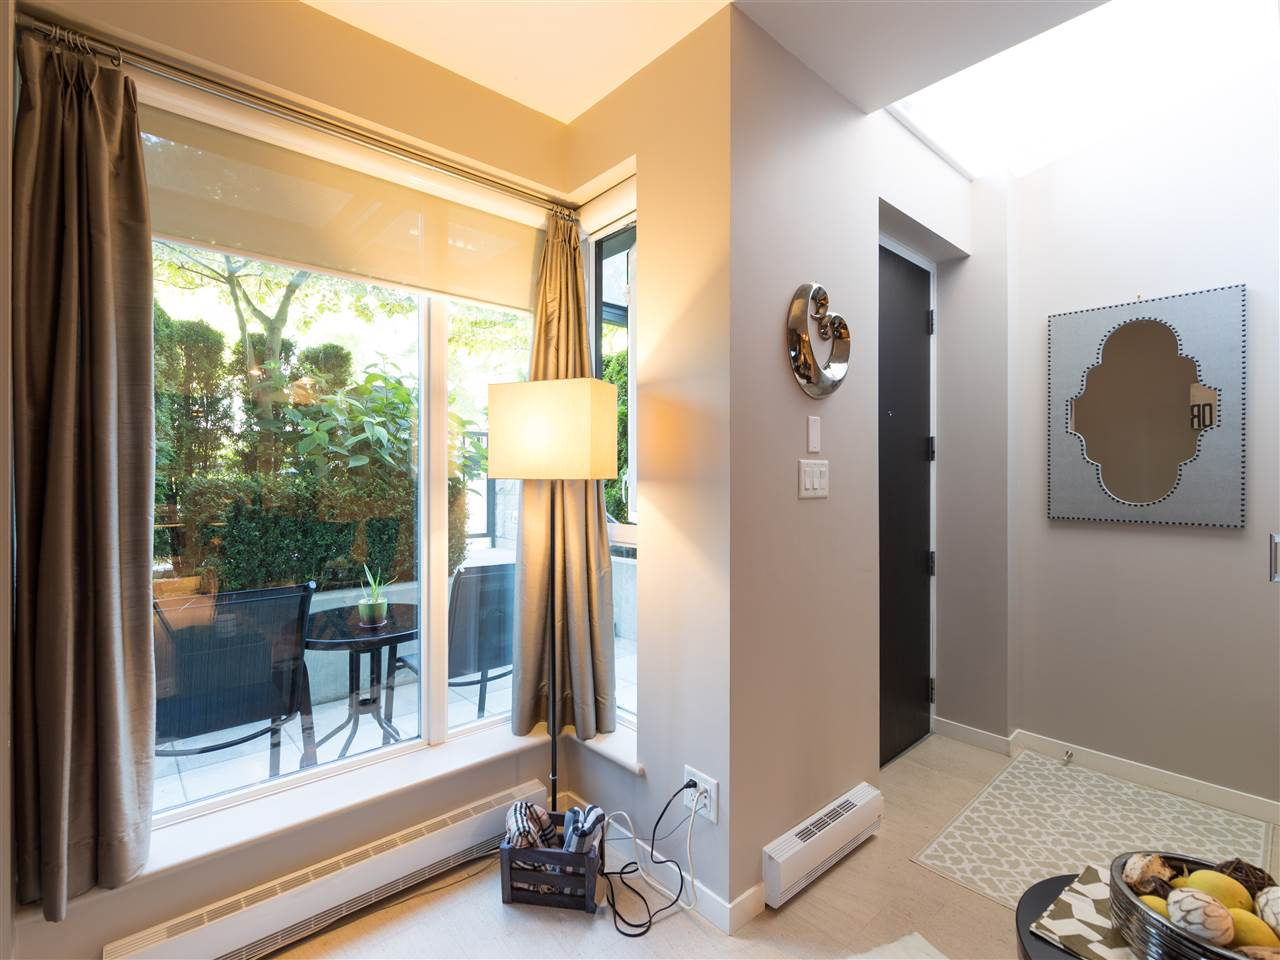 Condo Apartment at TH8 5991 WALTER GAGE ROAD, Unit TH8, Vancouver West, British Columbia. Image 3